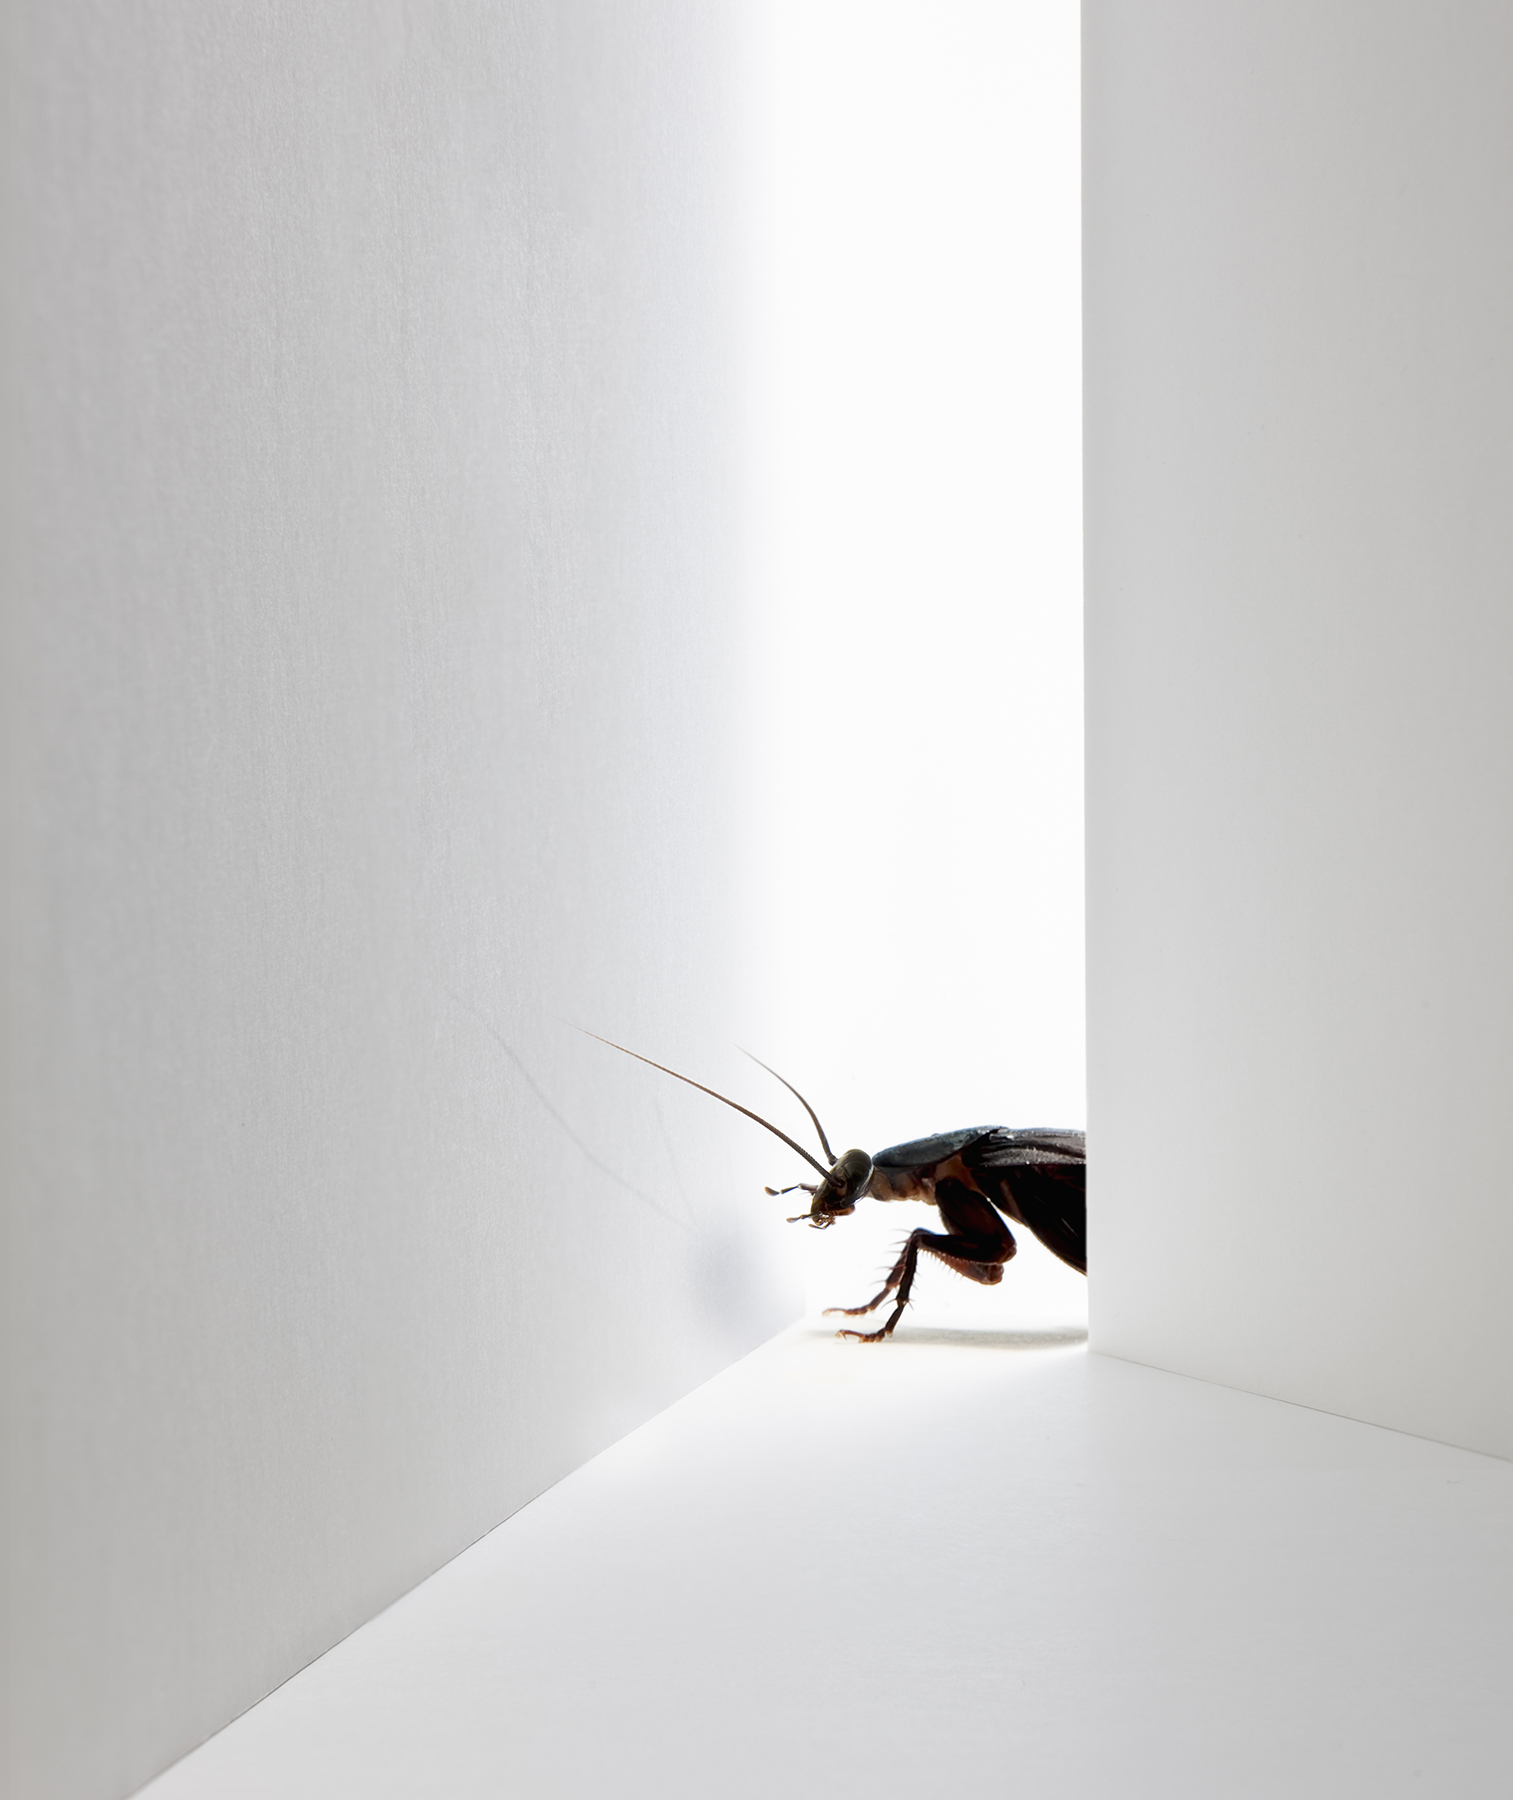 Cockroach turning corner